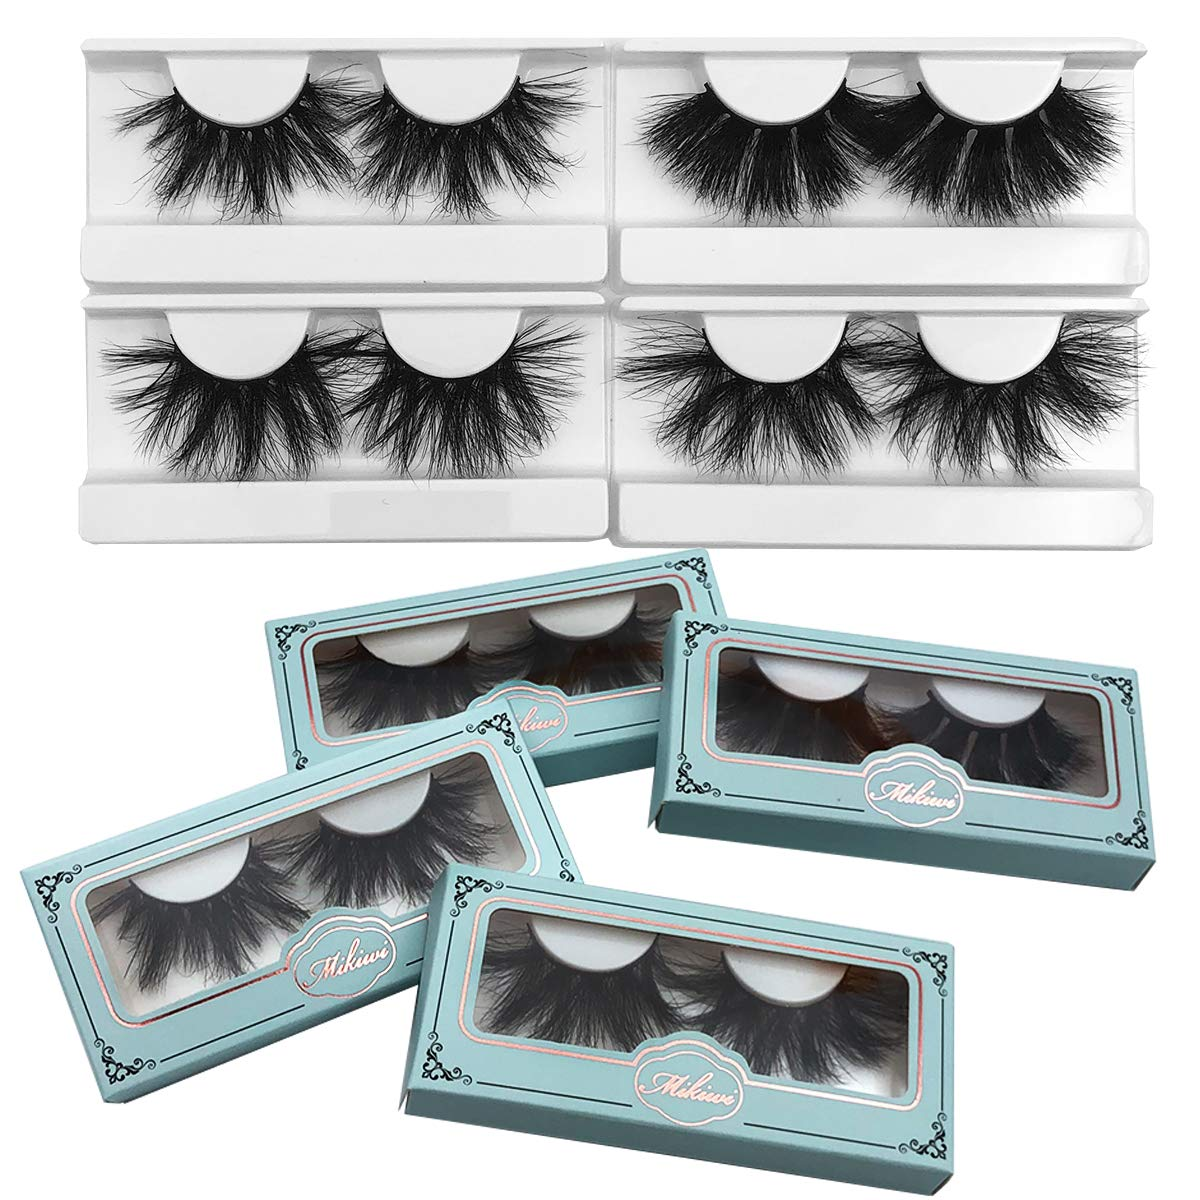 Amazon Com 25mm Mink Lashes Mikiwi Real Mink Lashes Thick Handmade Full Strip Lashes Crueltyl Free Fluffy Lash Luxury Makeup Dramatic 3d Mink Lashes 4 Pack B Beauty